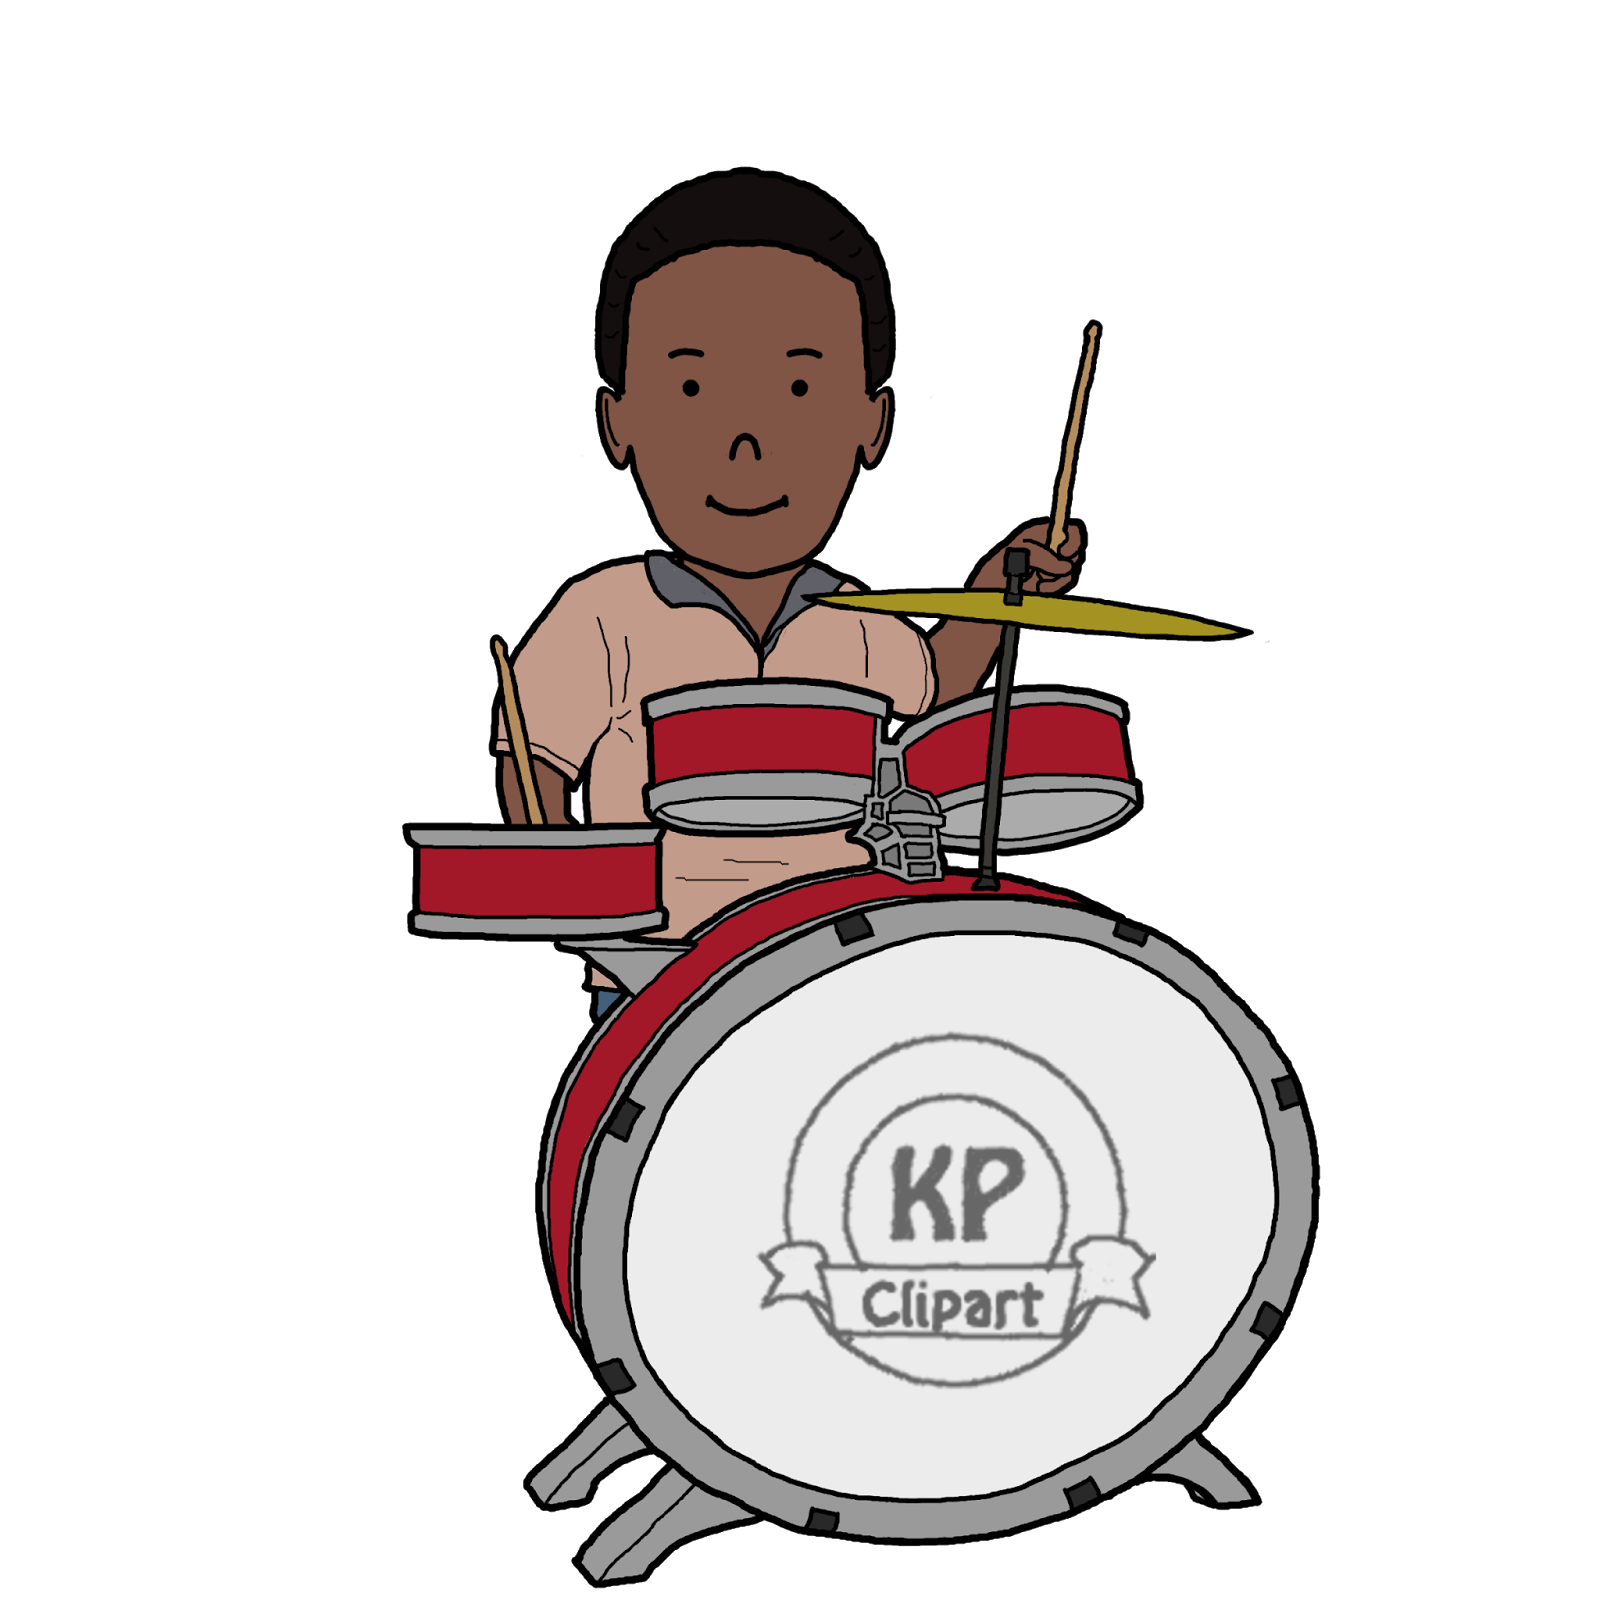 Drums clipart music lesson. Kp friends playing boy